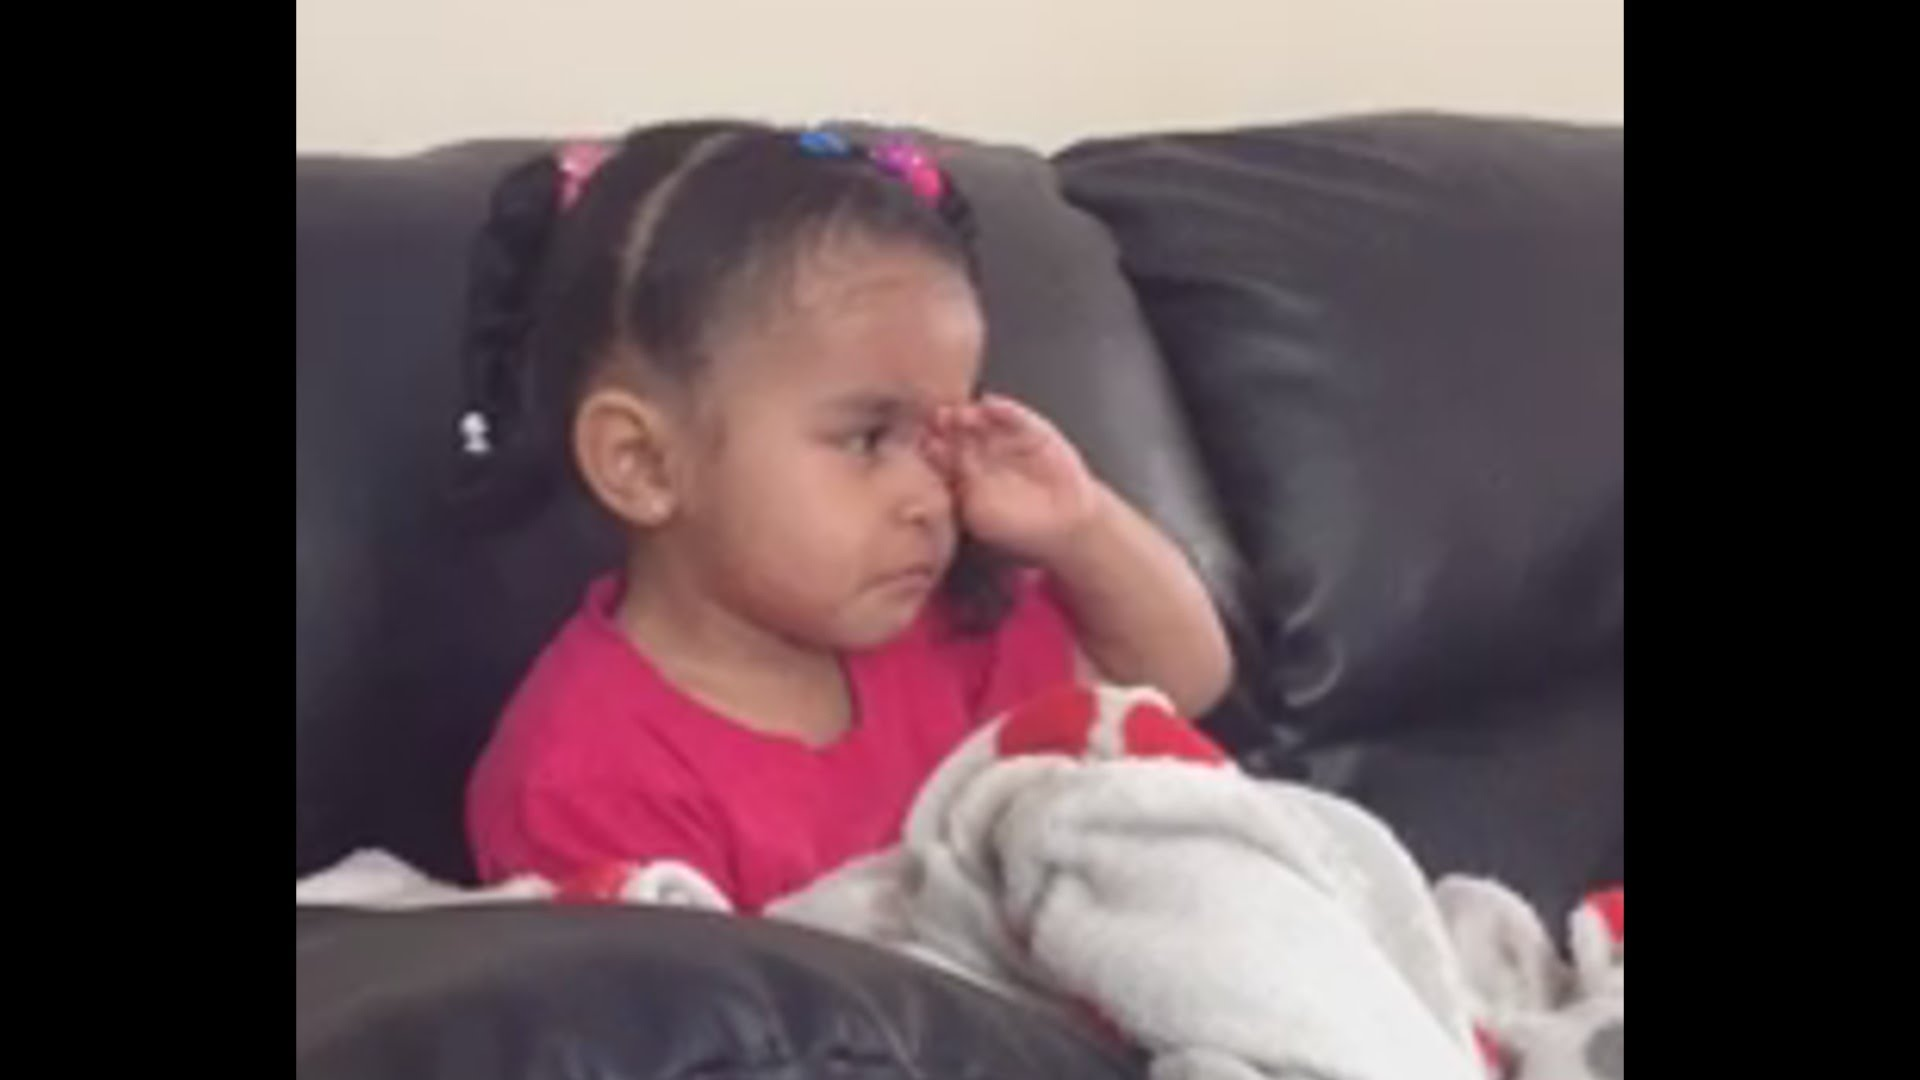 A Little Girl Gets Emotional During Lion King's Scene of Mufasa's Death